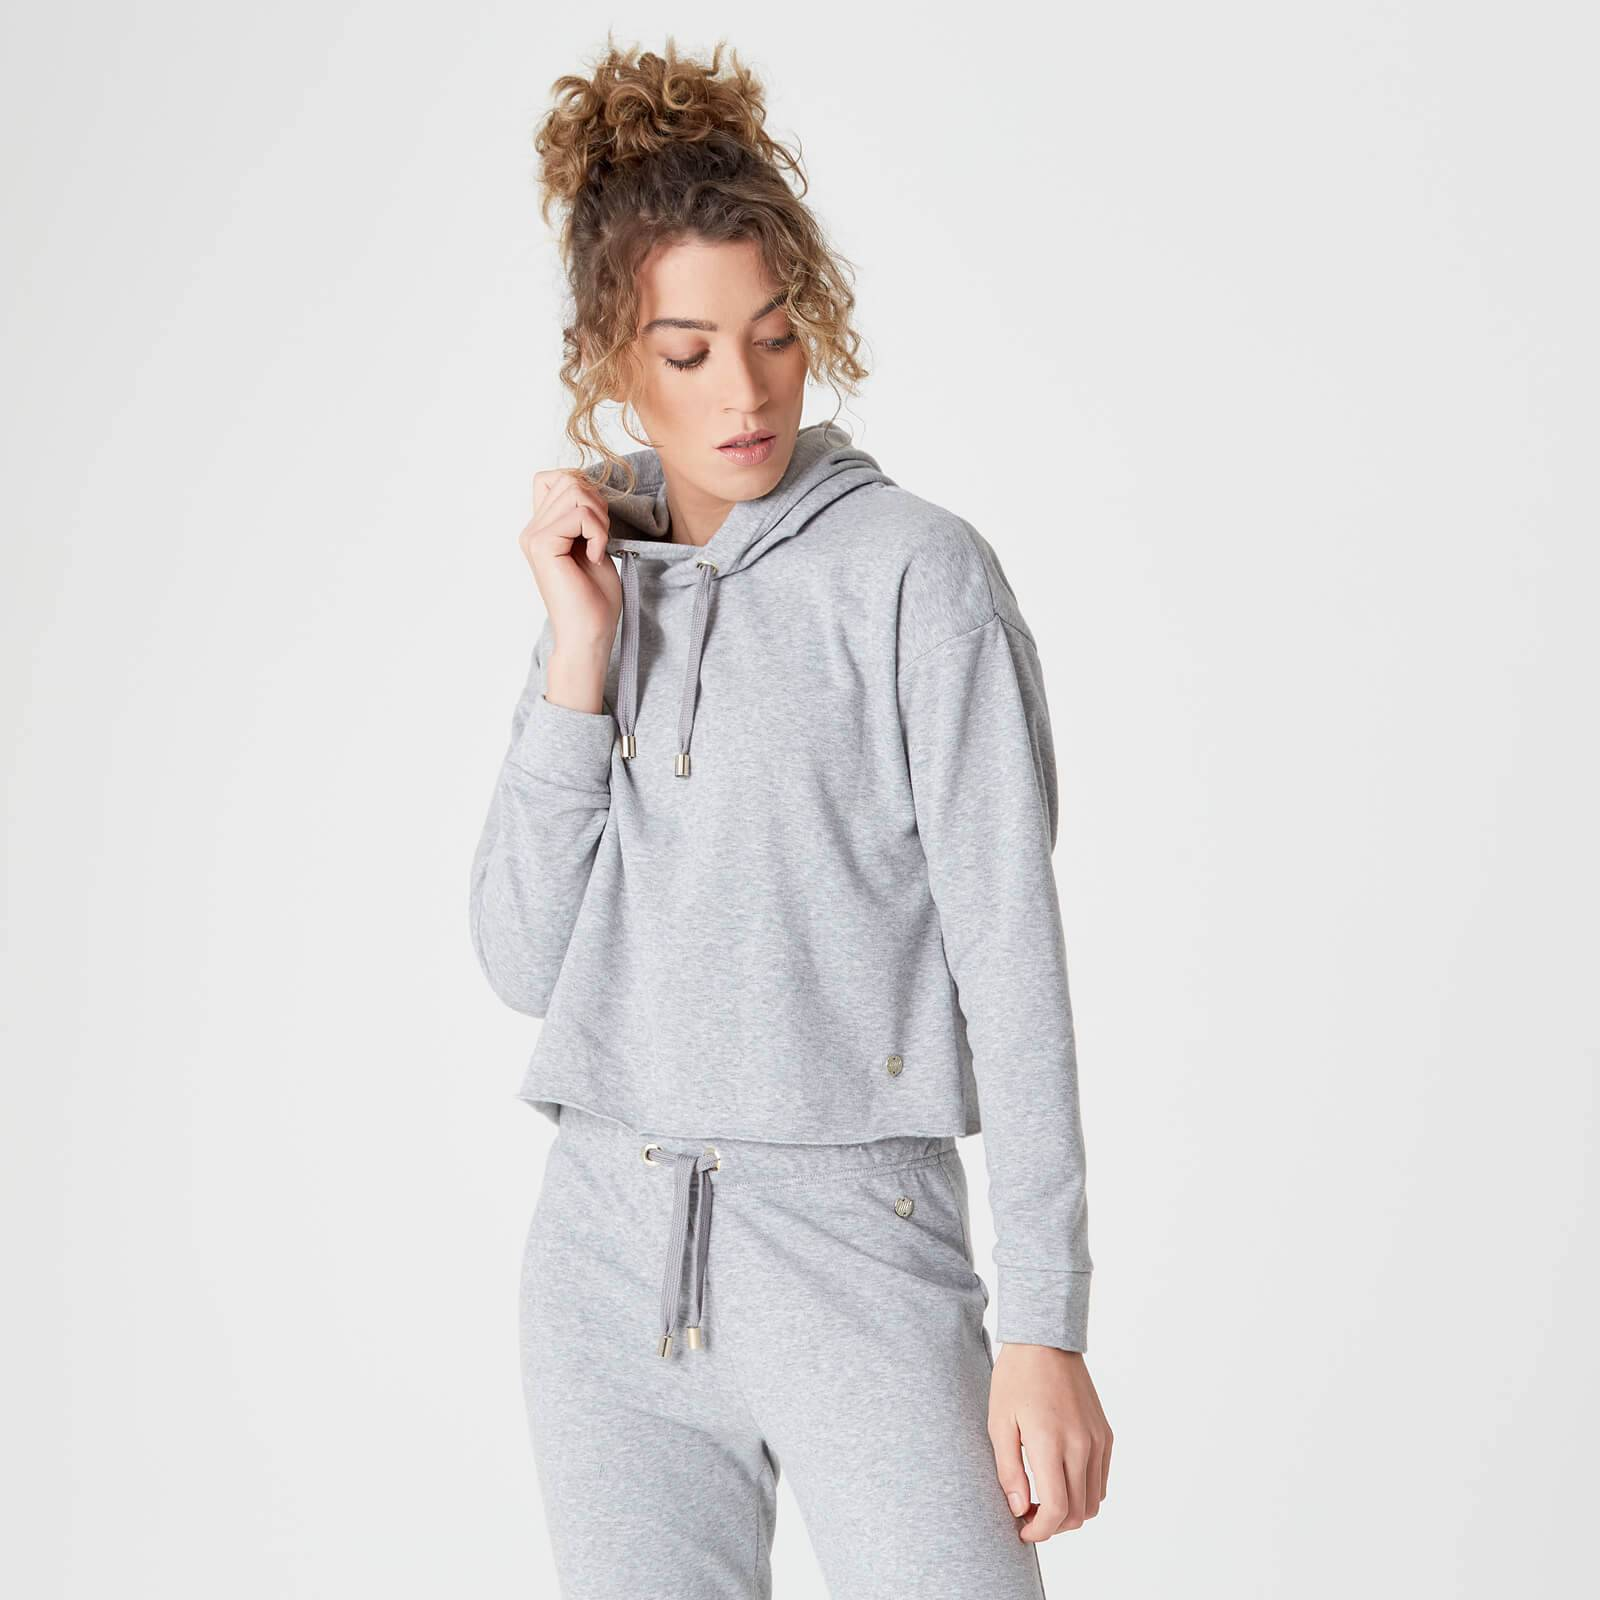 Myprotein Luxe Lounge Hoodie - Grey Marl - S